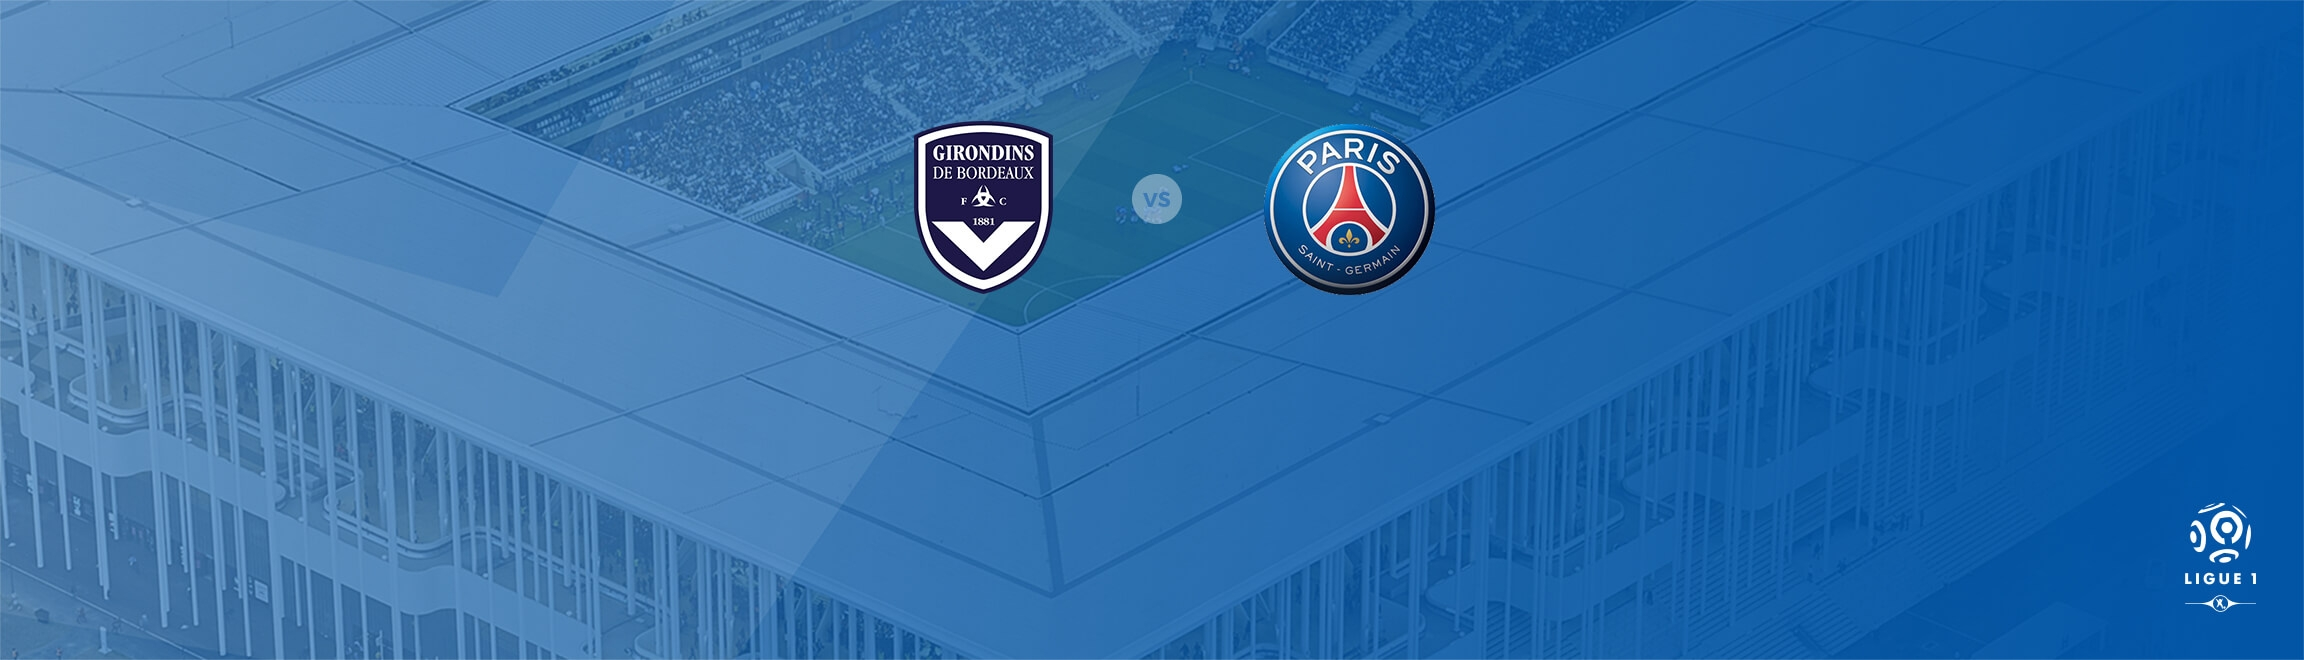 Match Bordeaux / PSG 2019 Ligue 1